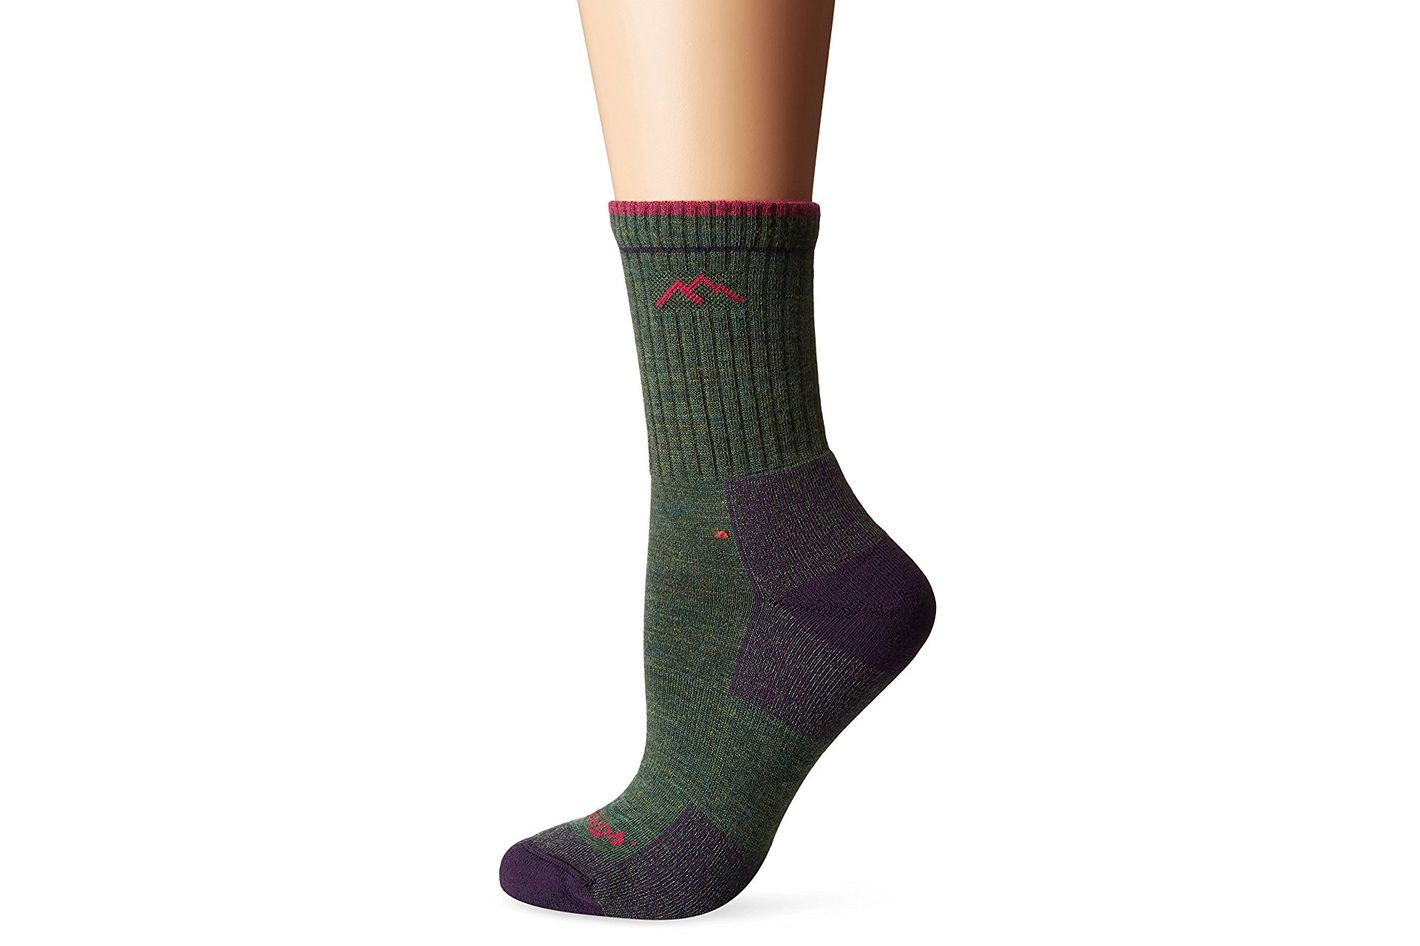 Darn Tough Vermont Cushioned Socks